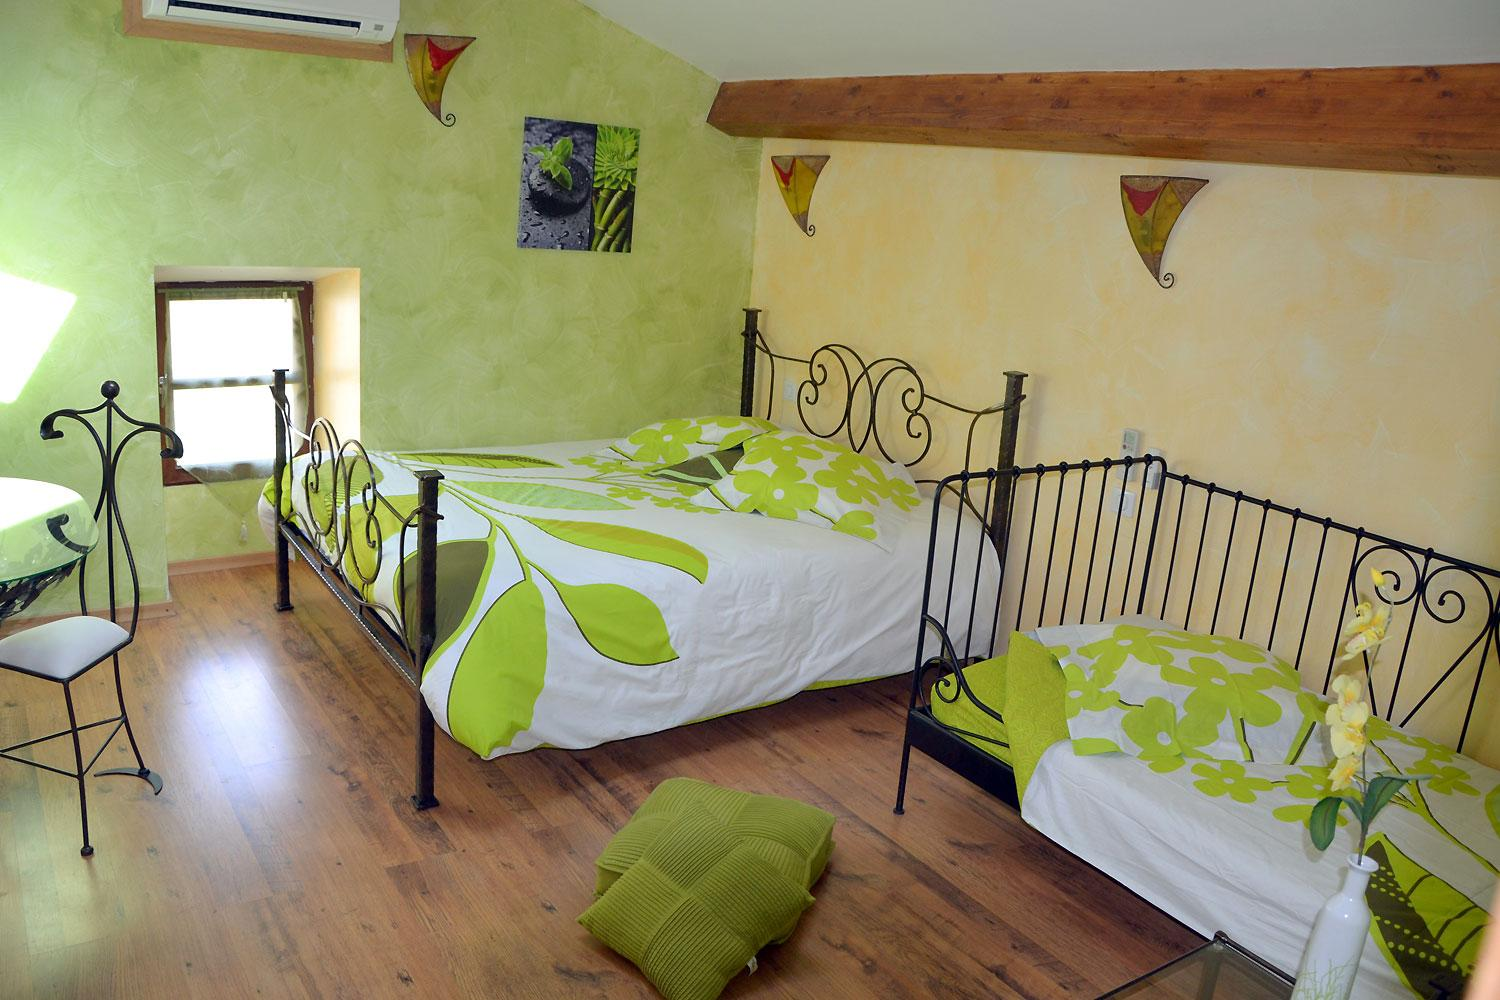 Cocoon Bedroom For Rent In The Gorges Du Tarn With